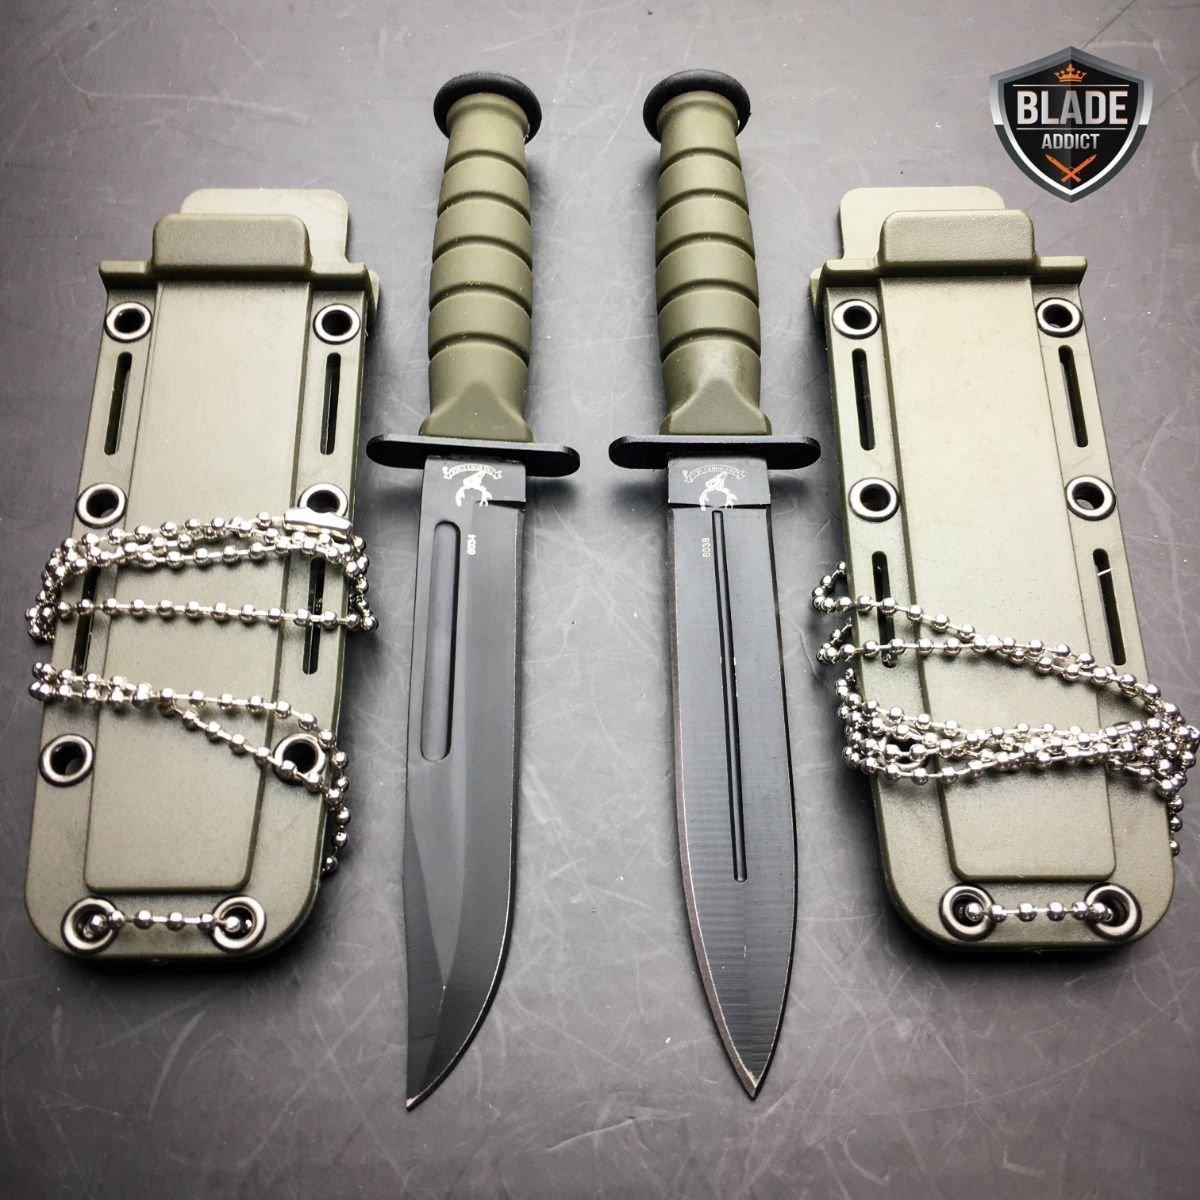 2 PC 6'' Kabai Tactical Combat Fixed Blade Neck Boot EcoGift Nice Knife with Sharp Blade w/ Chained Sheath NEW- Great For Fun And Practical Use